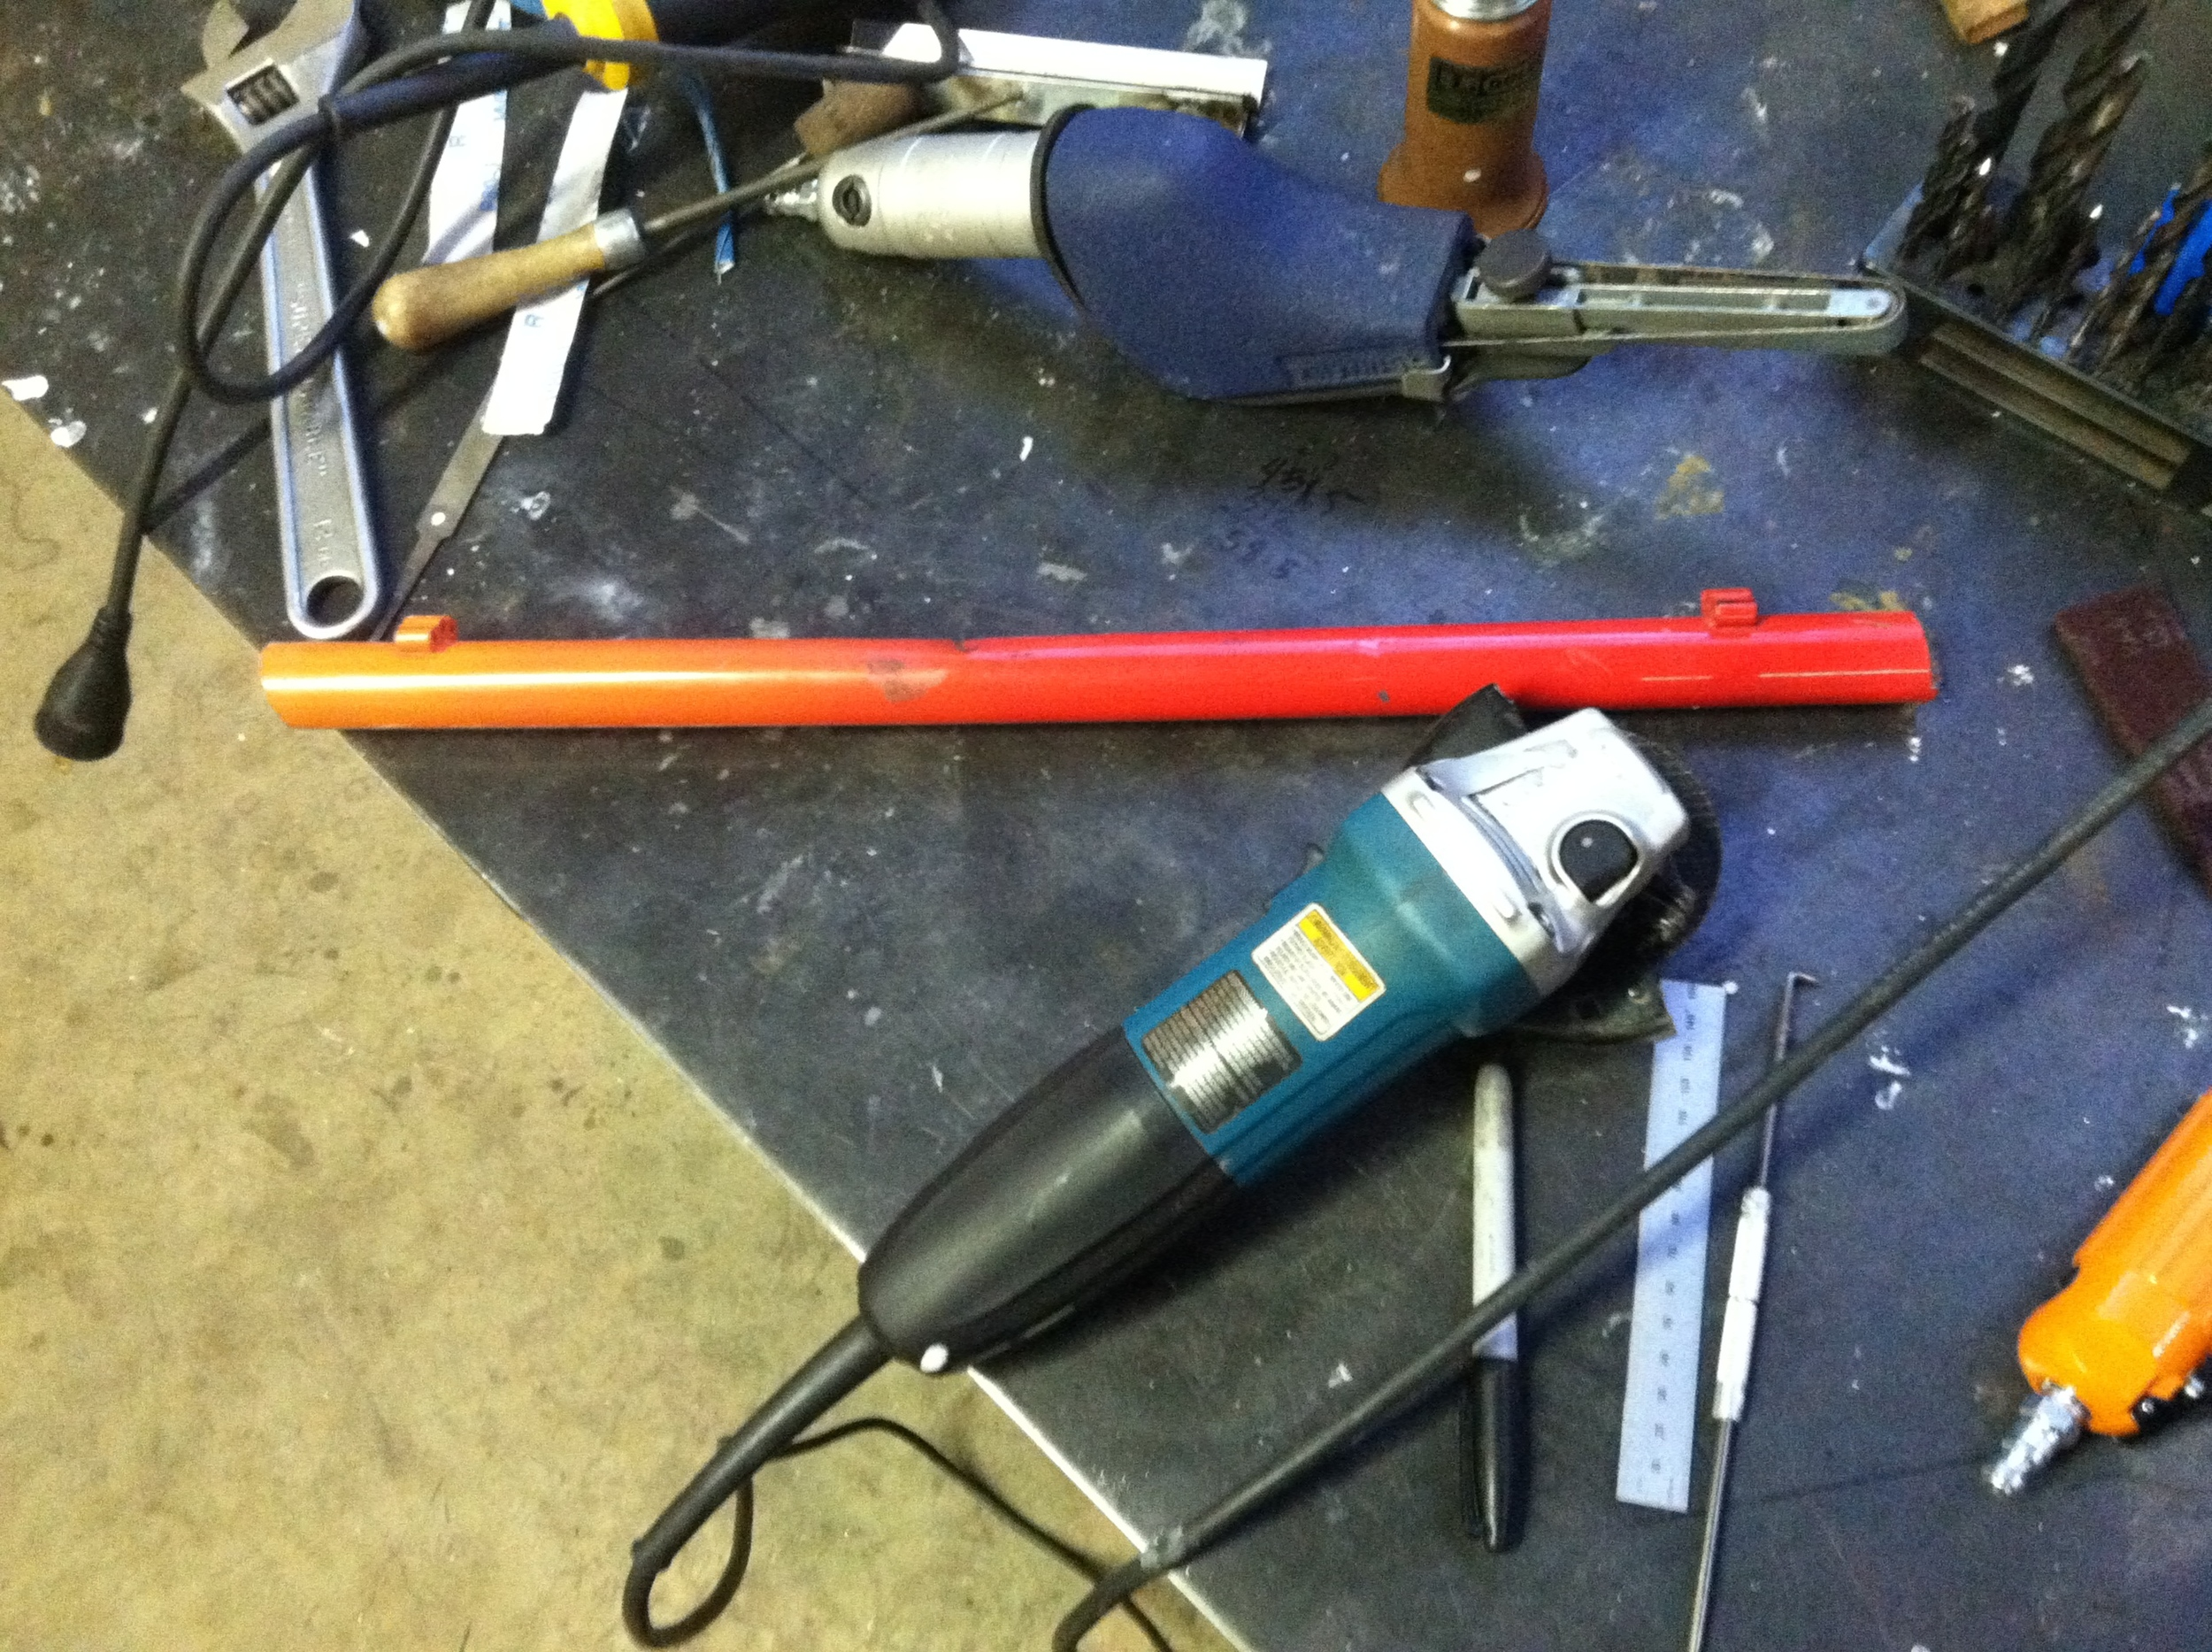 Quick work with the angle grinder.